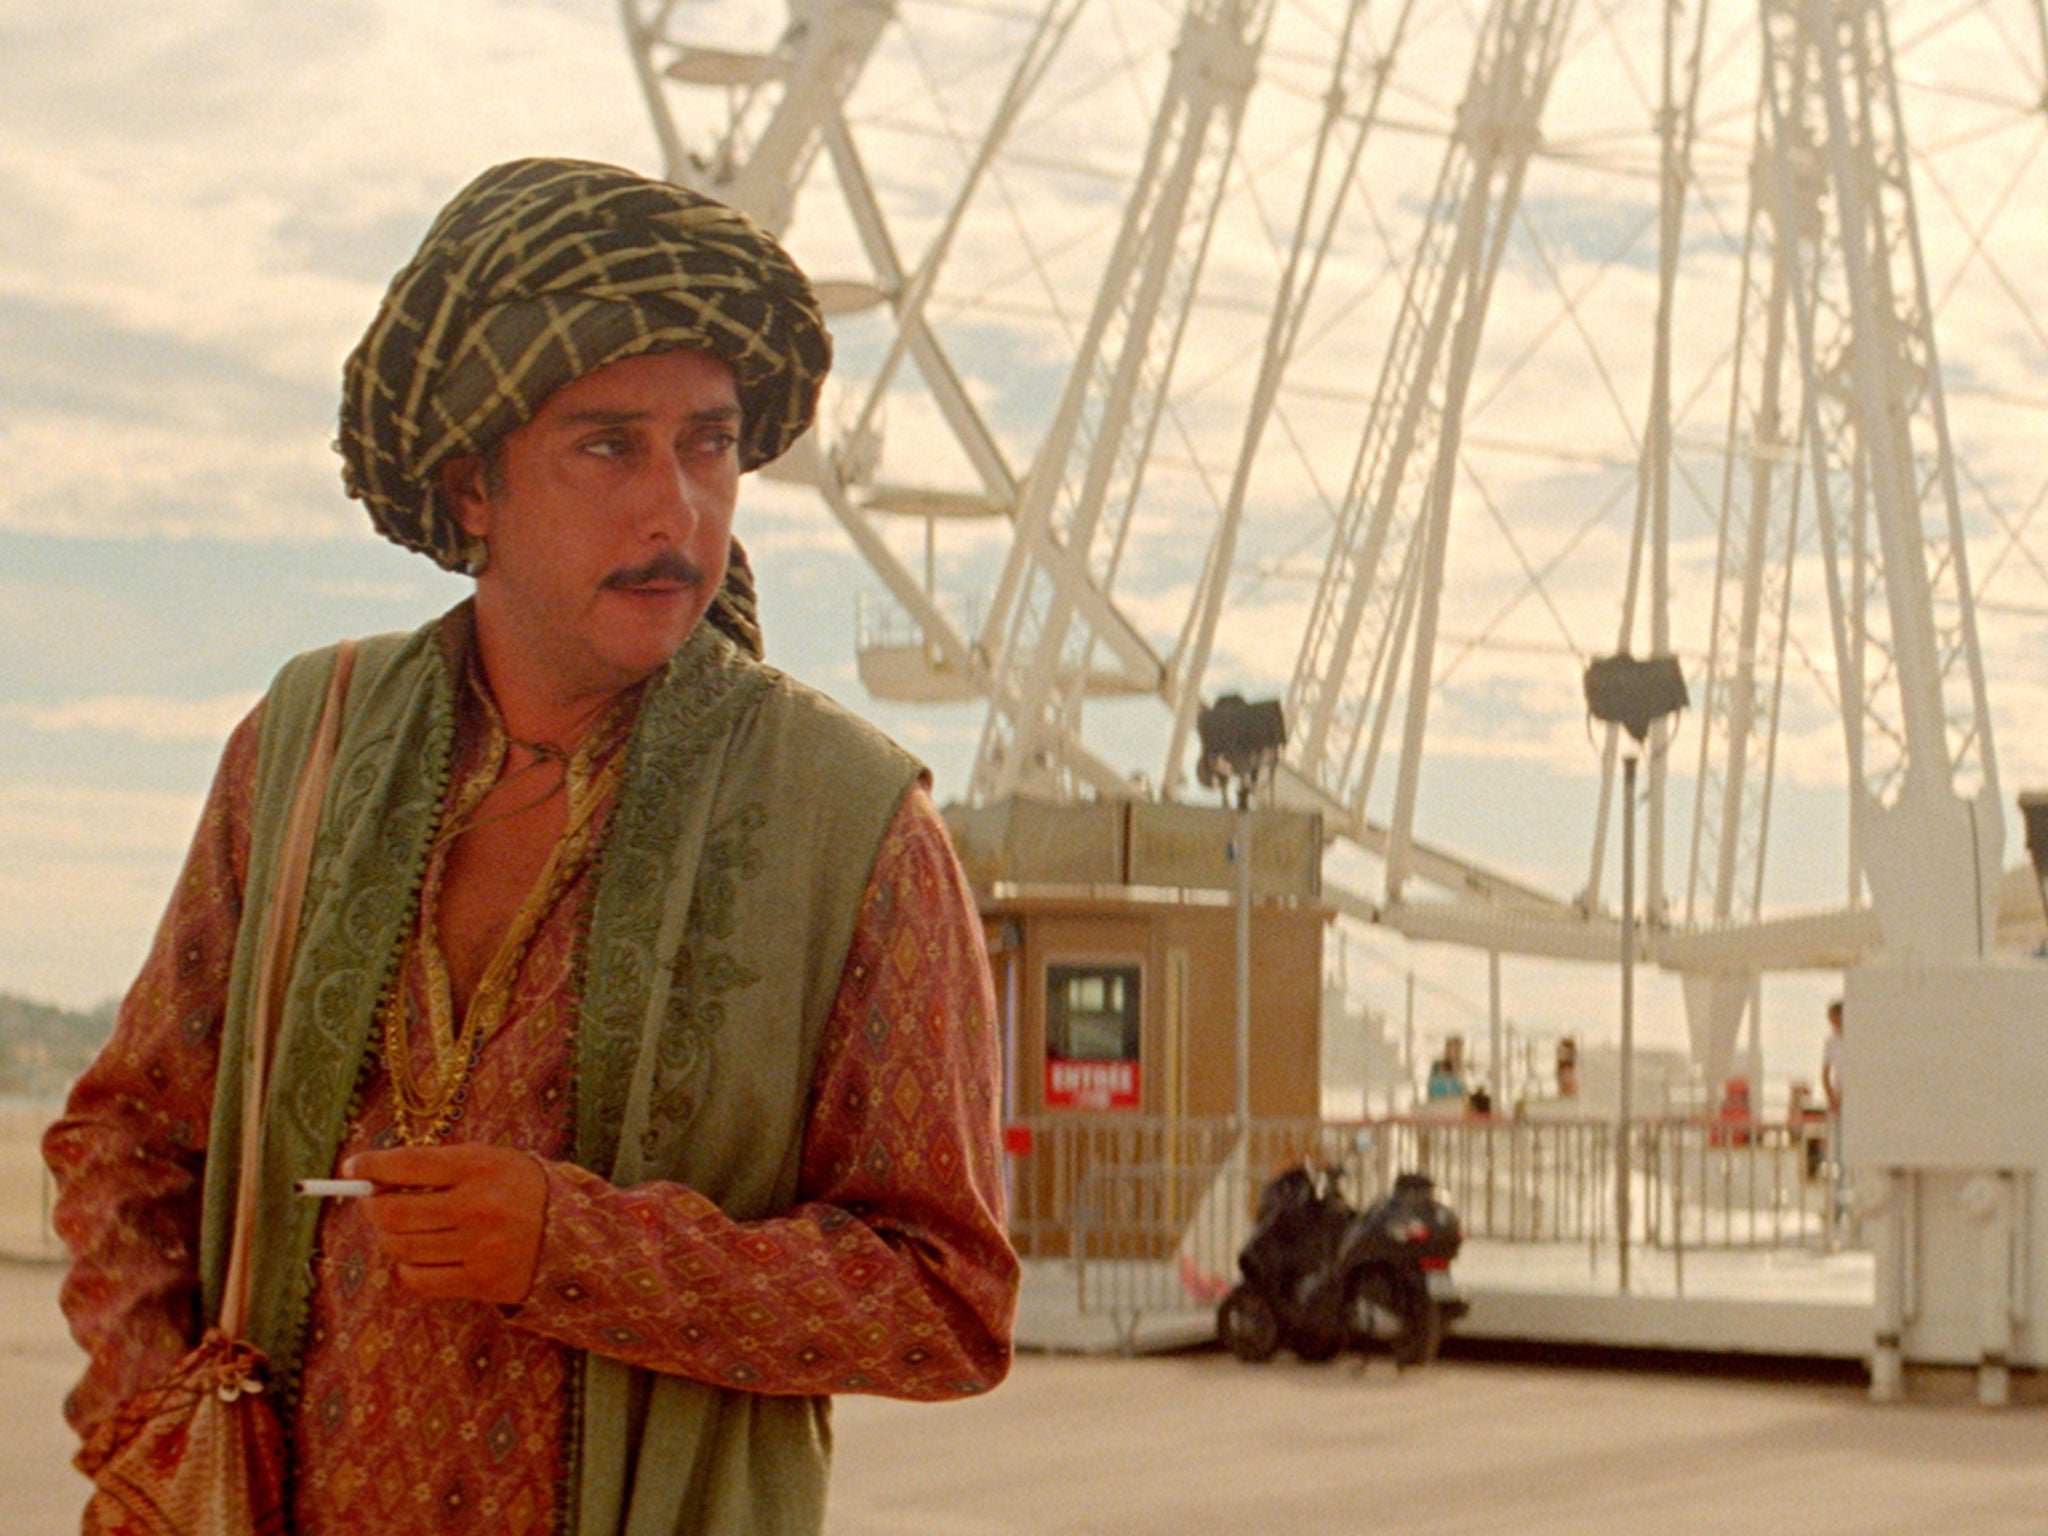 Arabian Nights Pelicula Completa Español miguel gomes interview: 'i've never read the whole book